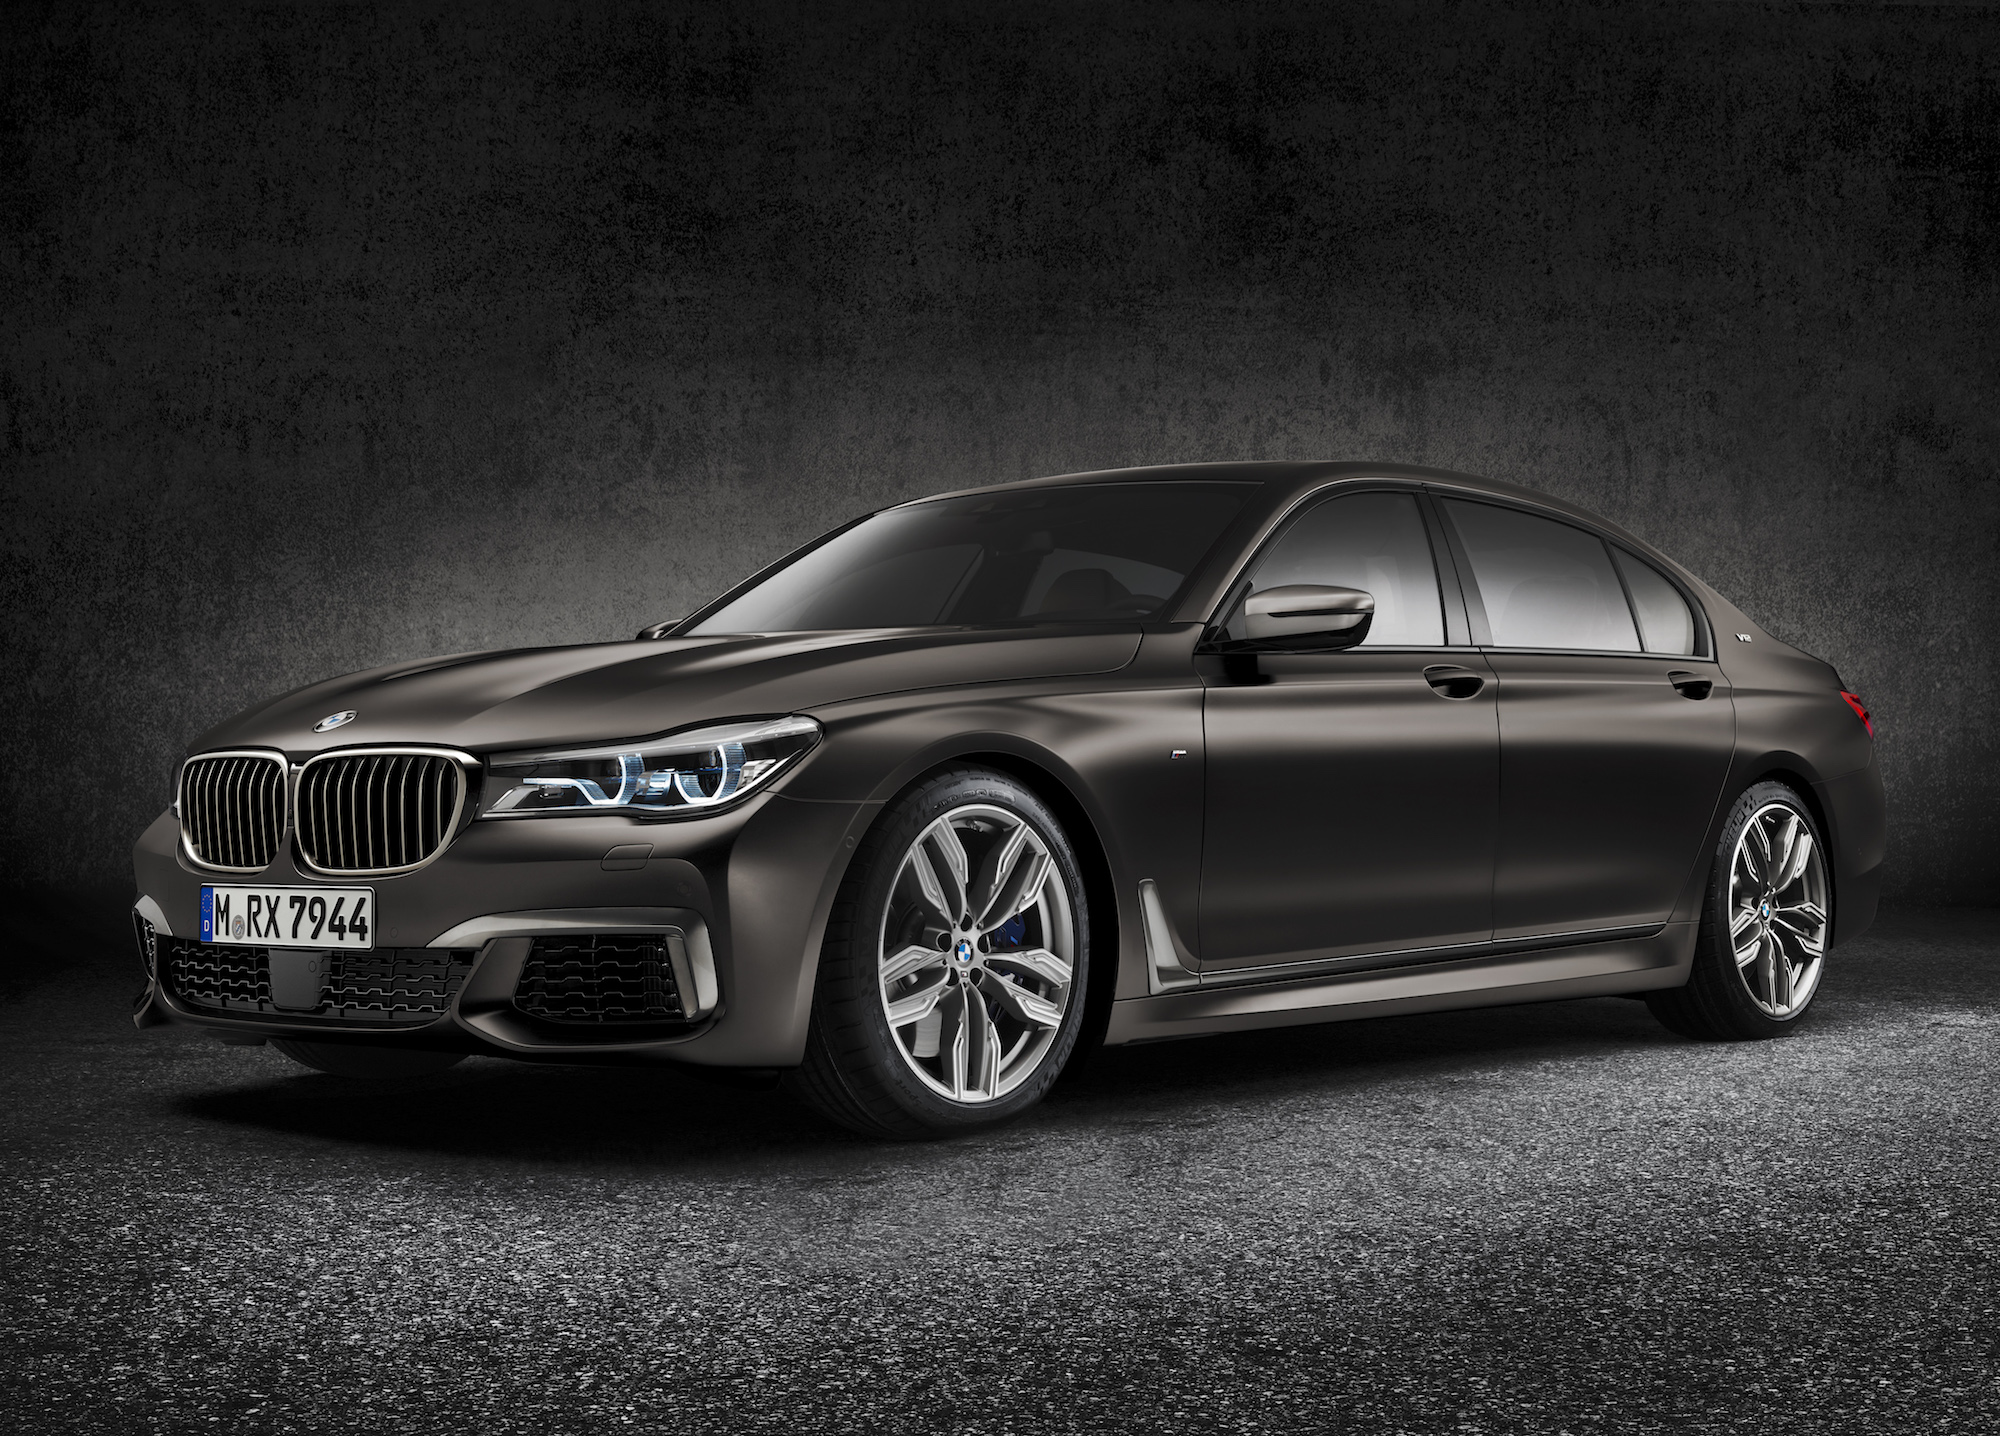 bmw 7 series gets v 12 powered m performance model. Black Bedroom Furniture Sets. Home Design Ideas